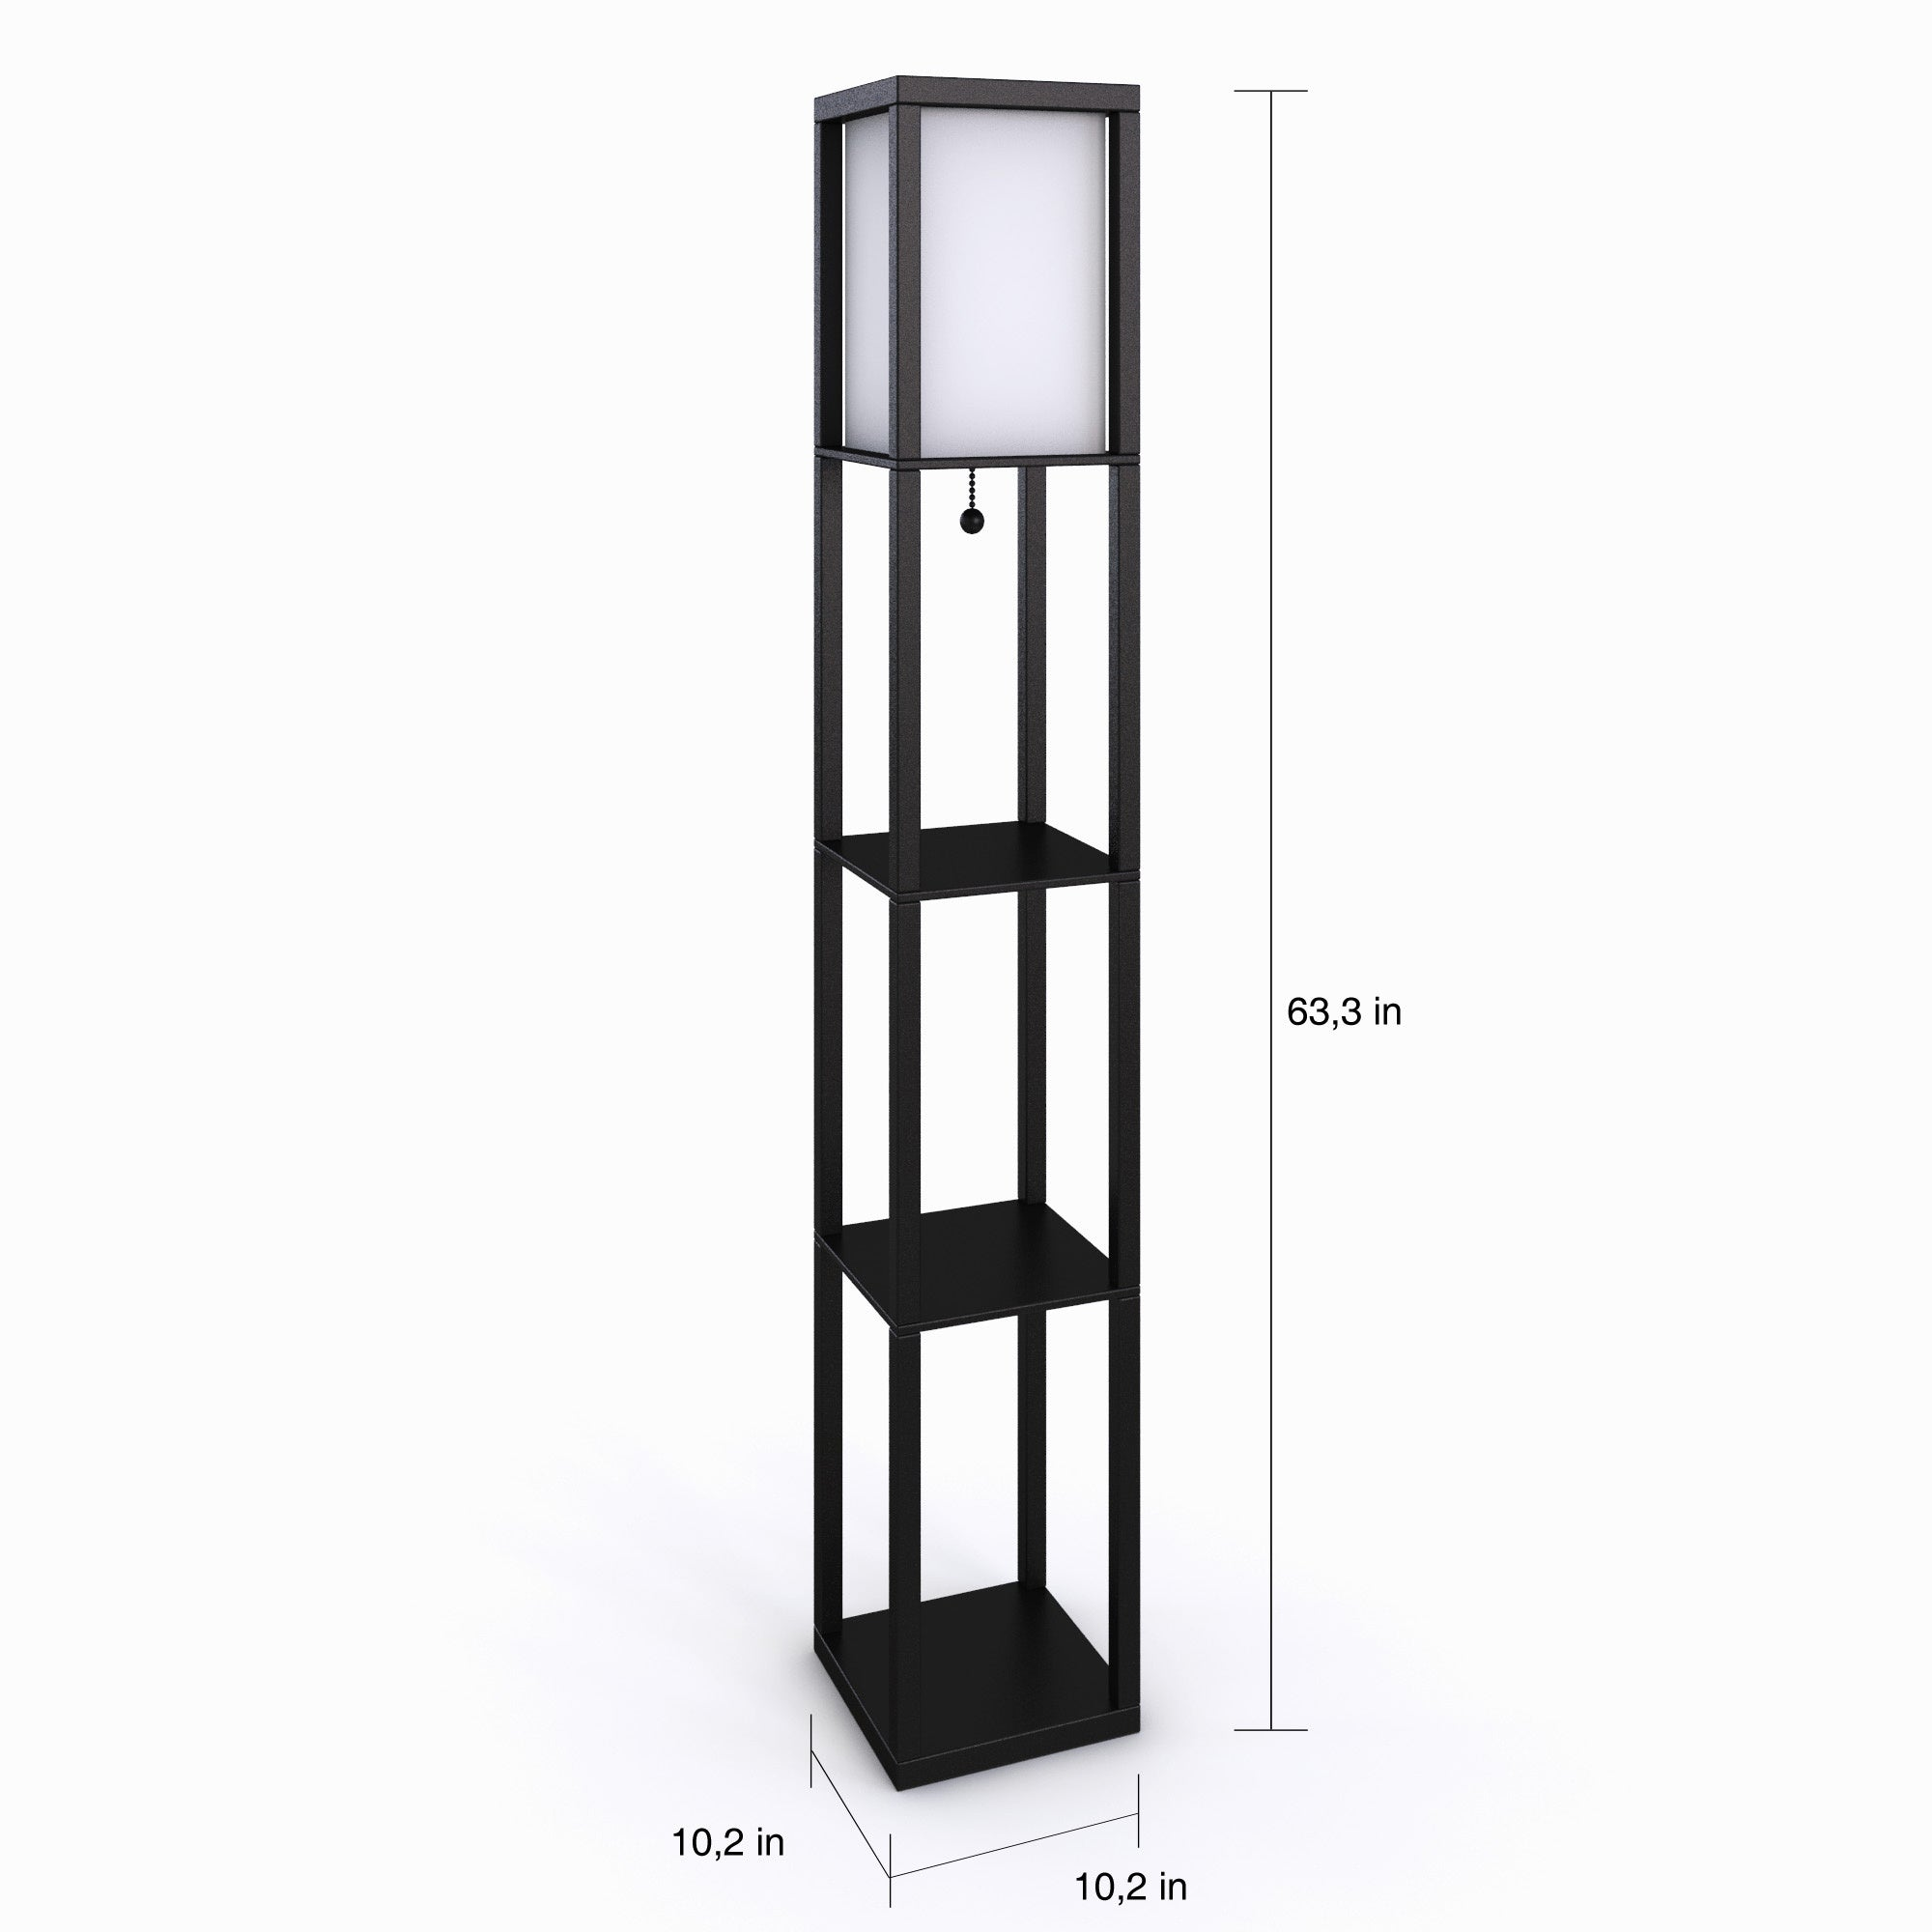 shelves wll products racks storage in suspension you en your ikea steel grid shelf kitchen gb extra rail with organisers stainless ash gives kungsfors spice